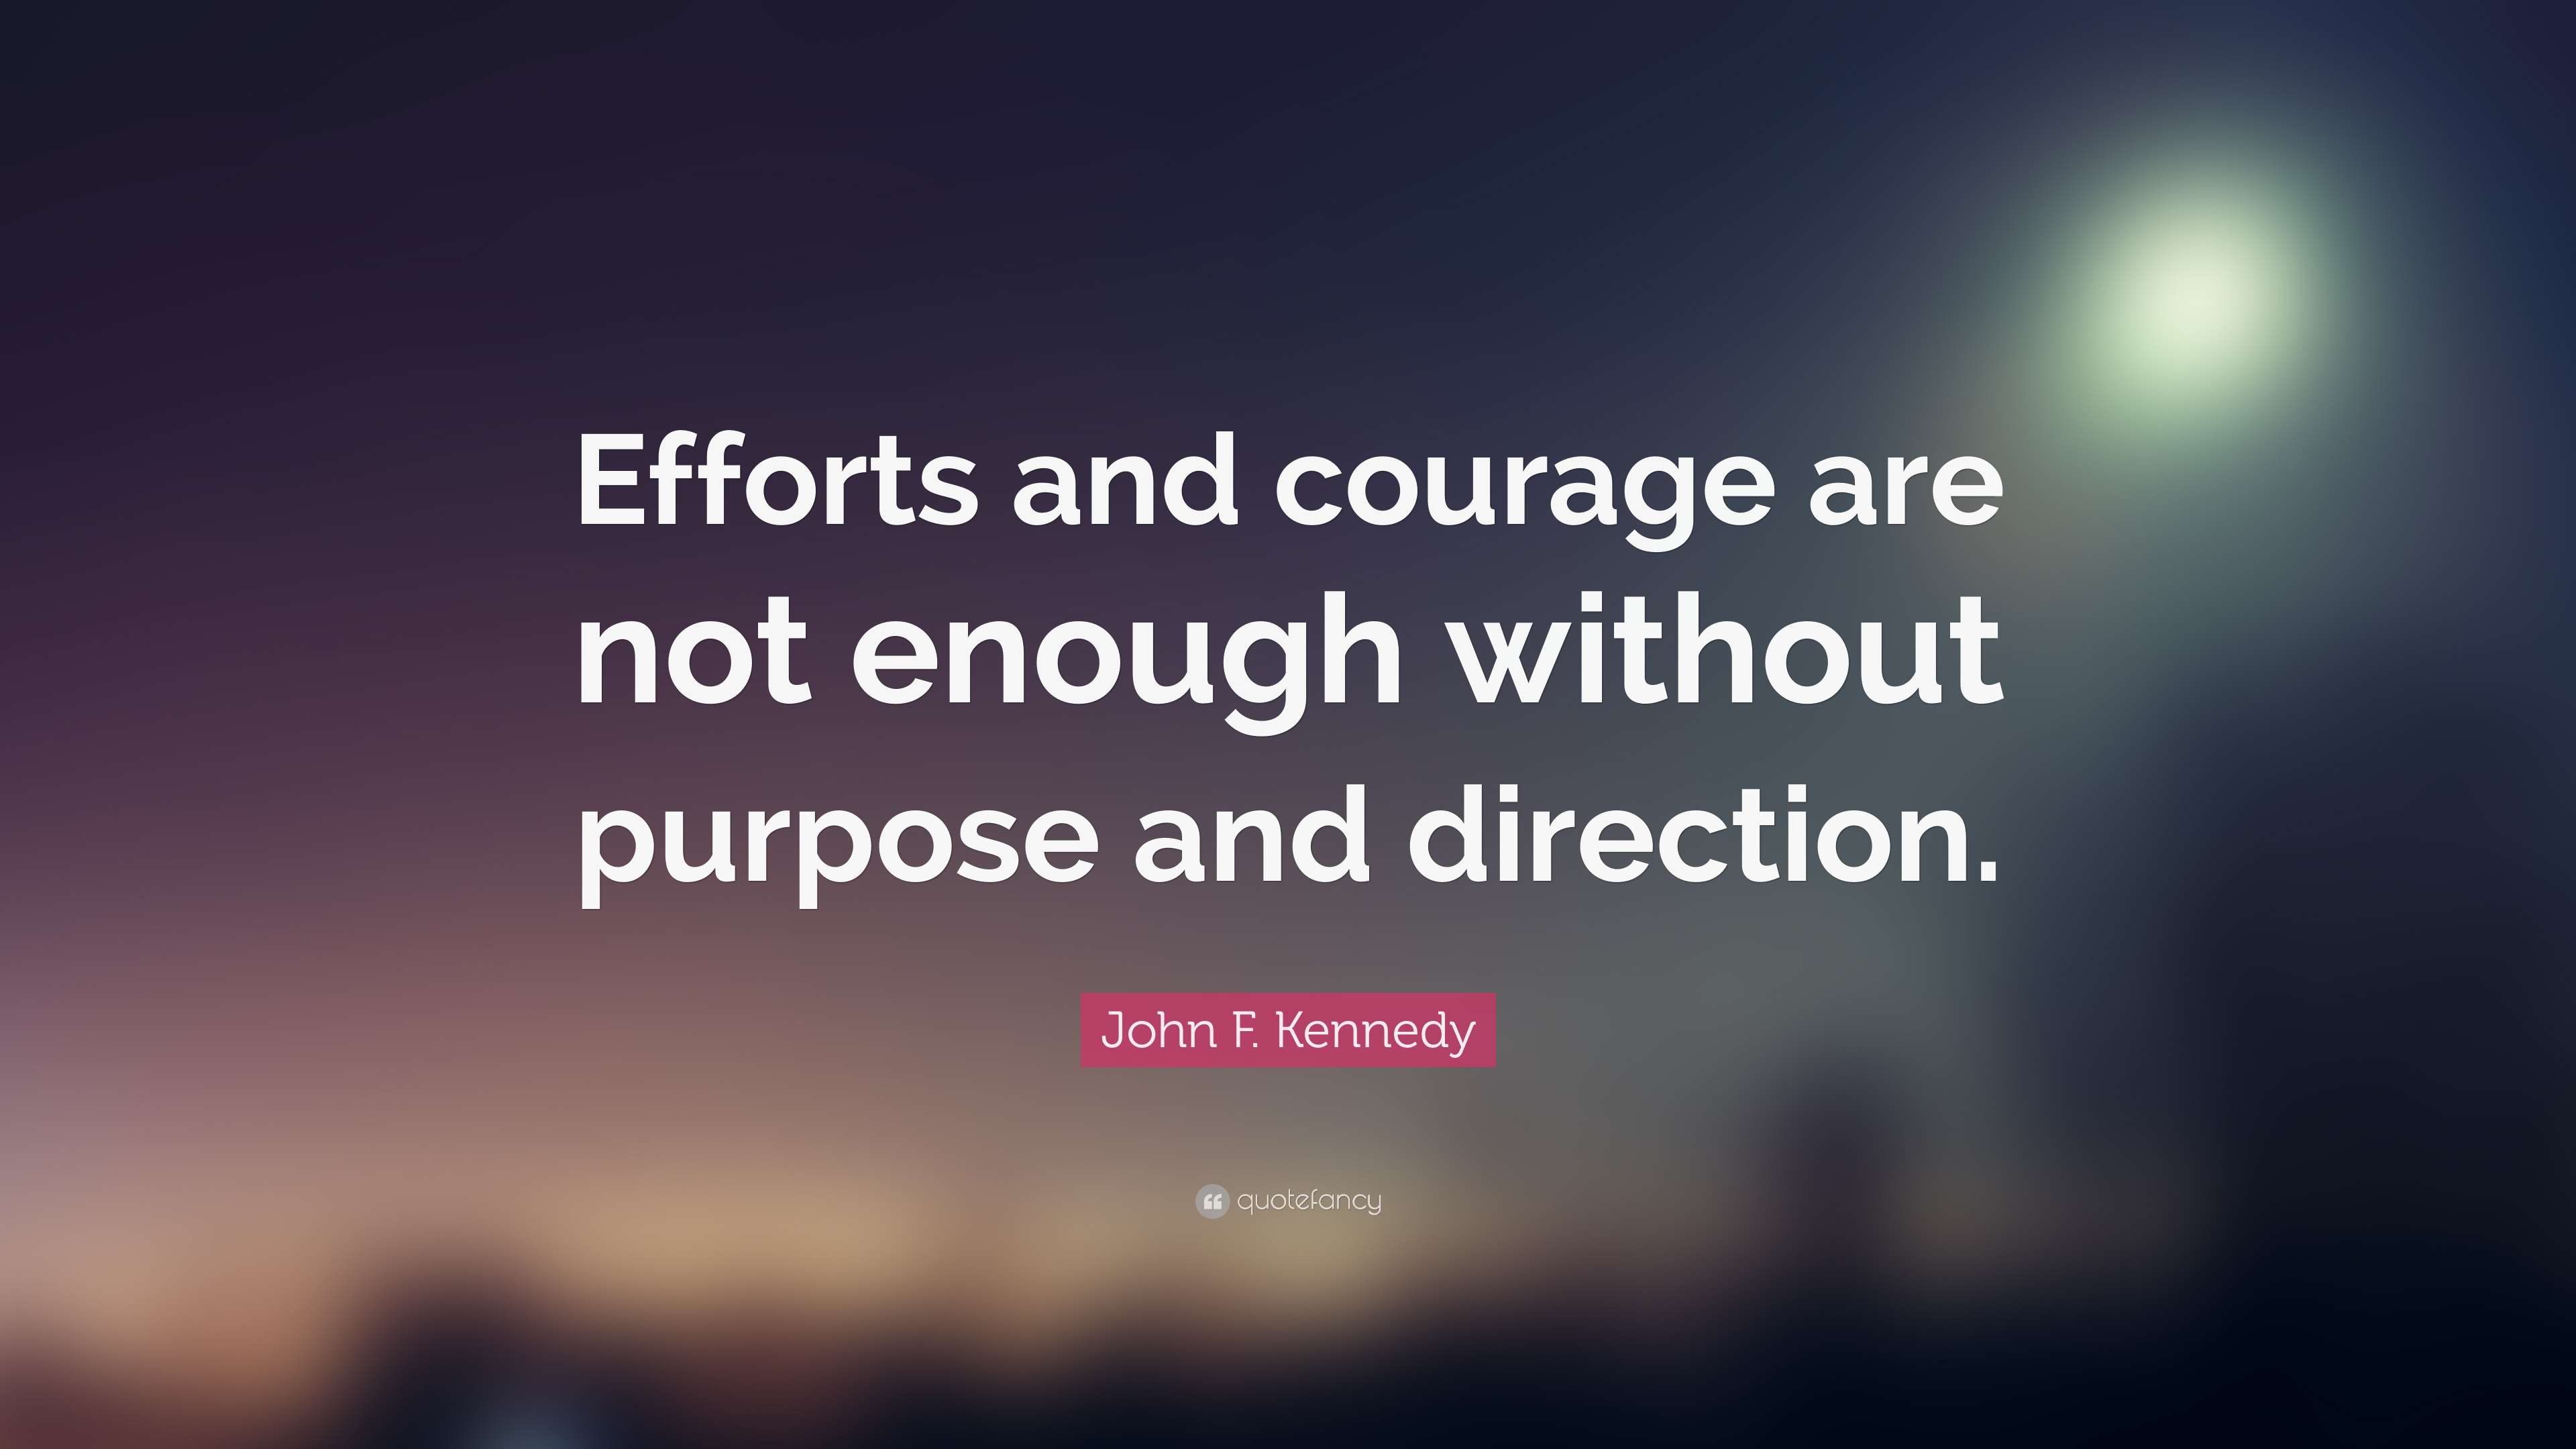 Basketball Quotes Efforts And Courage Are Not Enough Without Purpose Direction